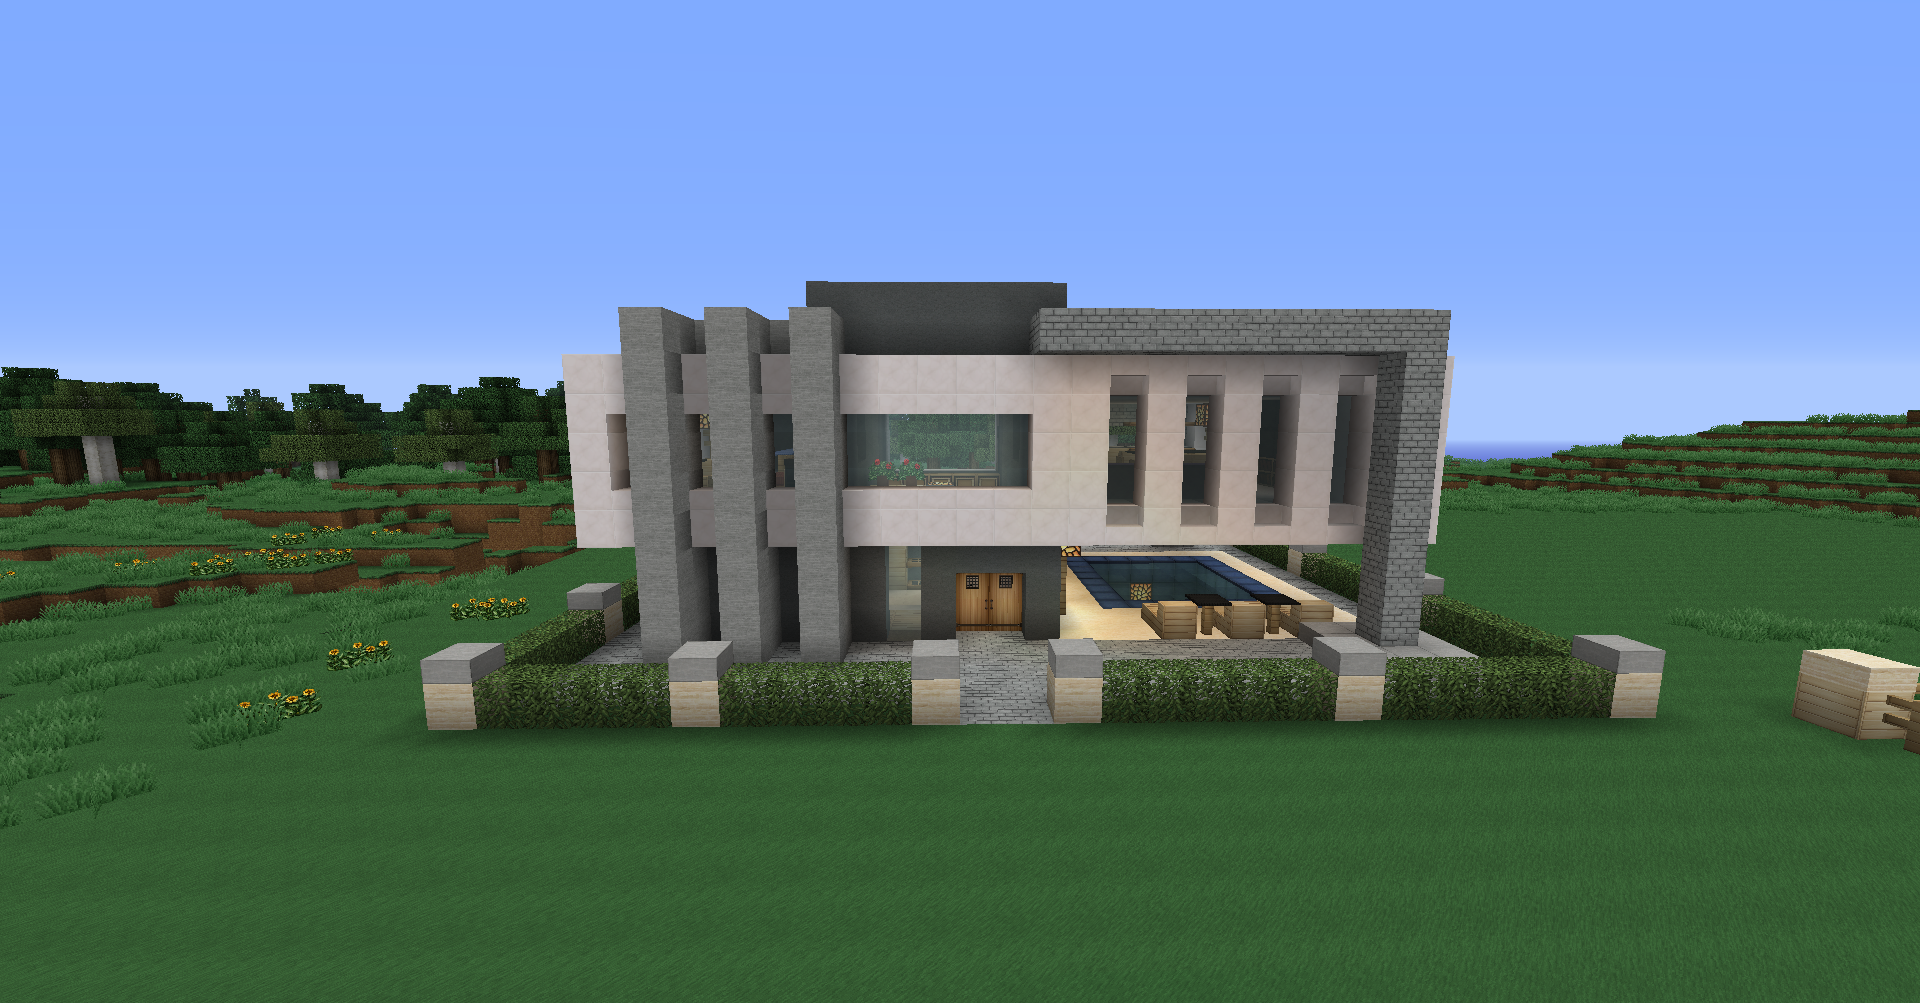 minecraft superb house wallpaper download minecraft superb house